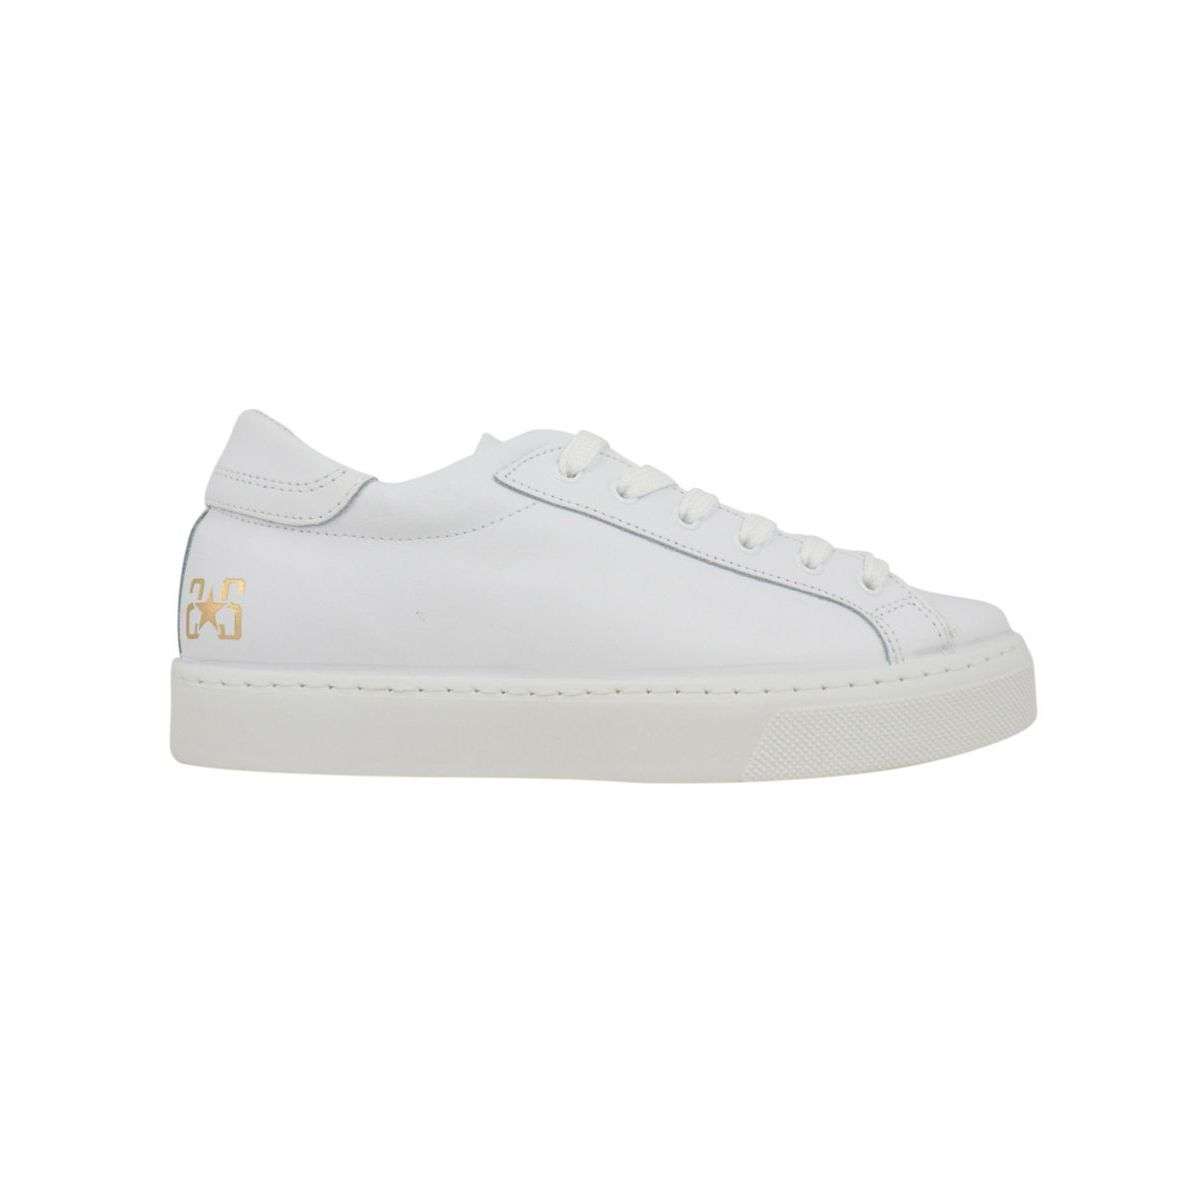 Leather sneakers with box bottom and small logo White / gold 2Star